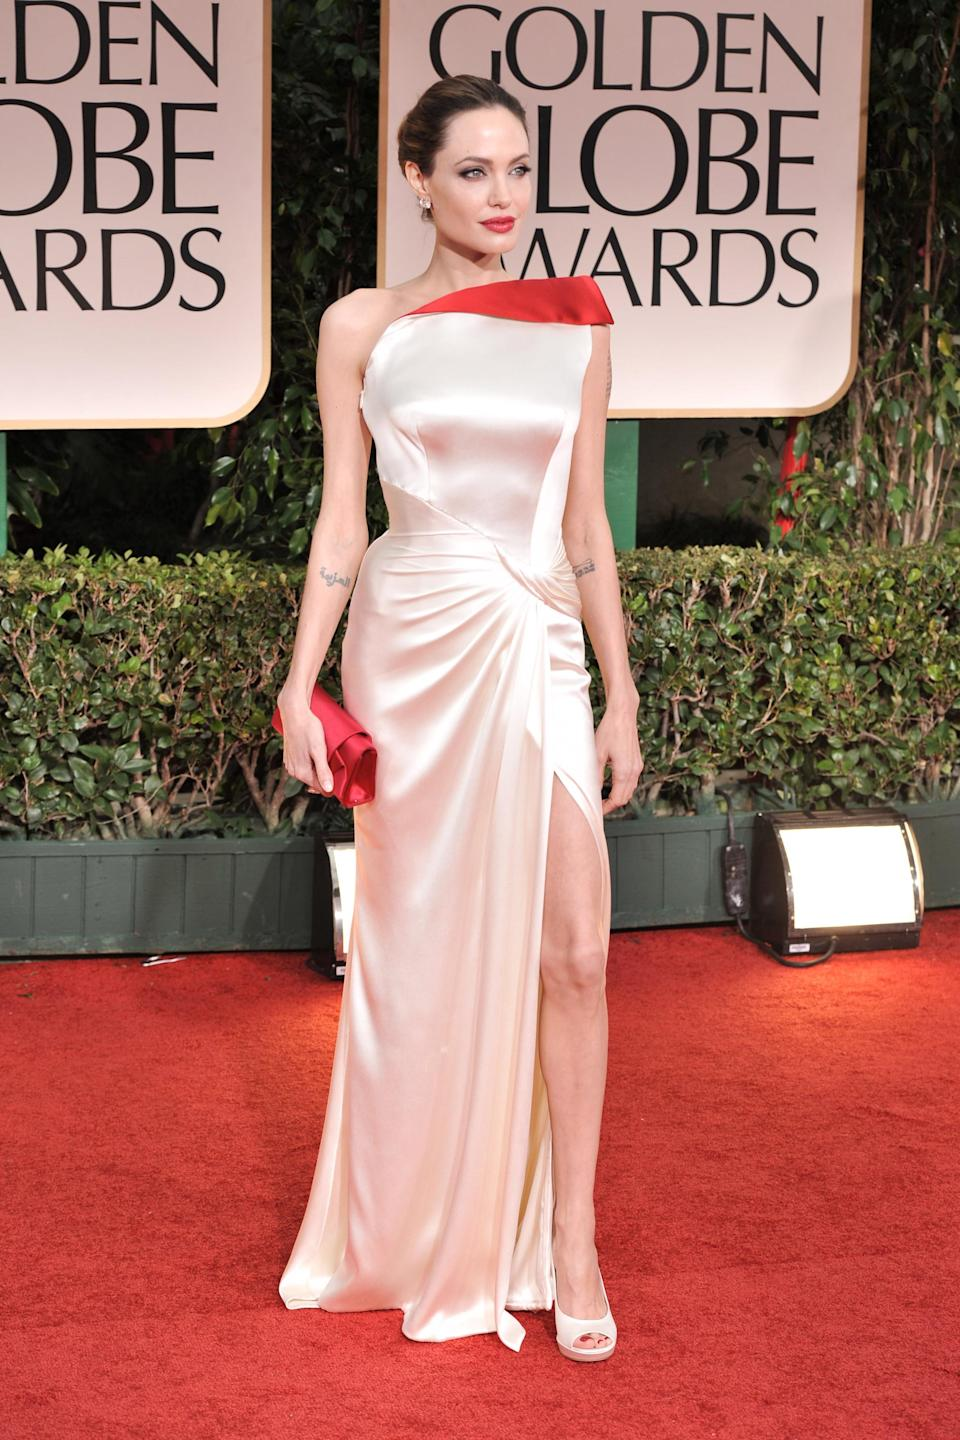 """<strong><h2>2012</h2></strong><br>We've yet to spot Angelina Jolie looking anything short of fabulous on the red carpet circuit, but this show-stopping Atelier Versace gown is hands down her best.<br><br><em>Angelina Jolie in Atelier Versace.</em><span class=""""copyright"""">Photo: George Pimentel/WireImage.</span>"""